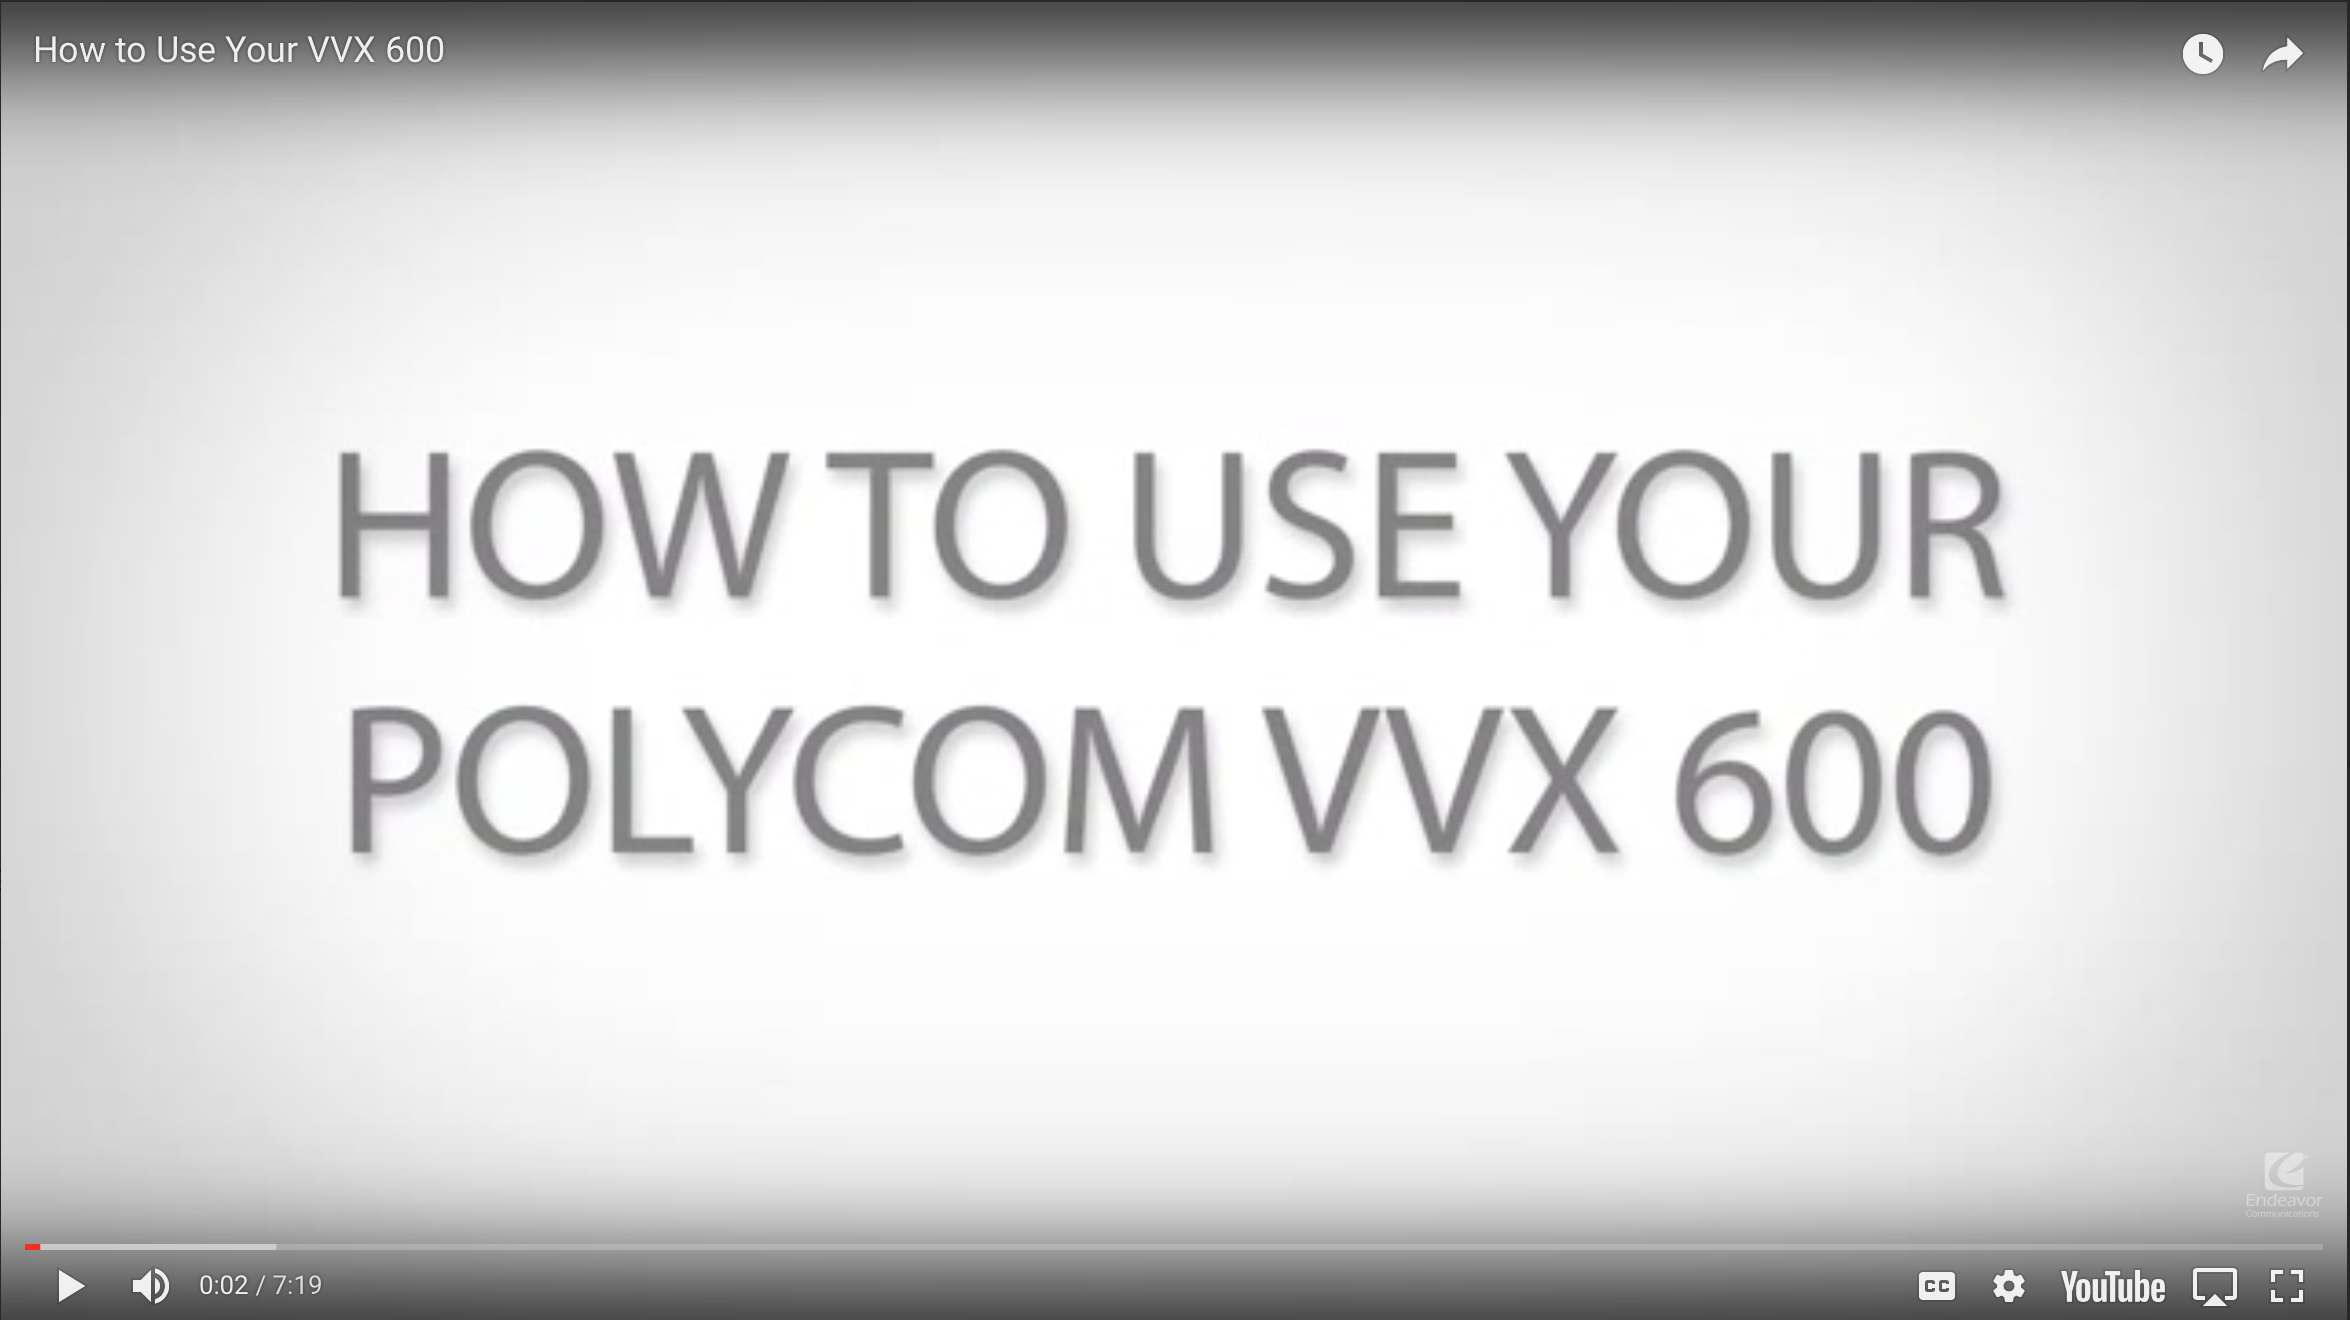 How to use your Polycom VVX 600